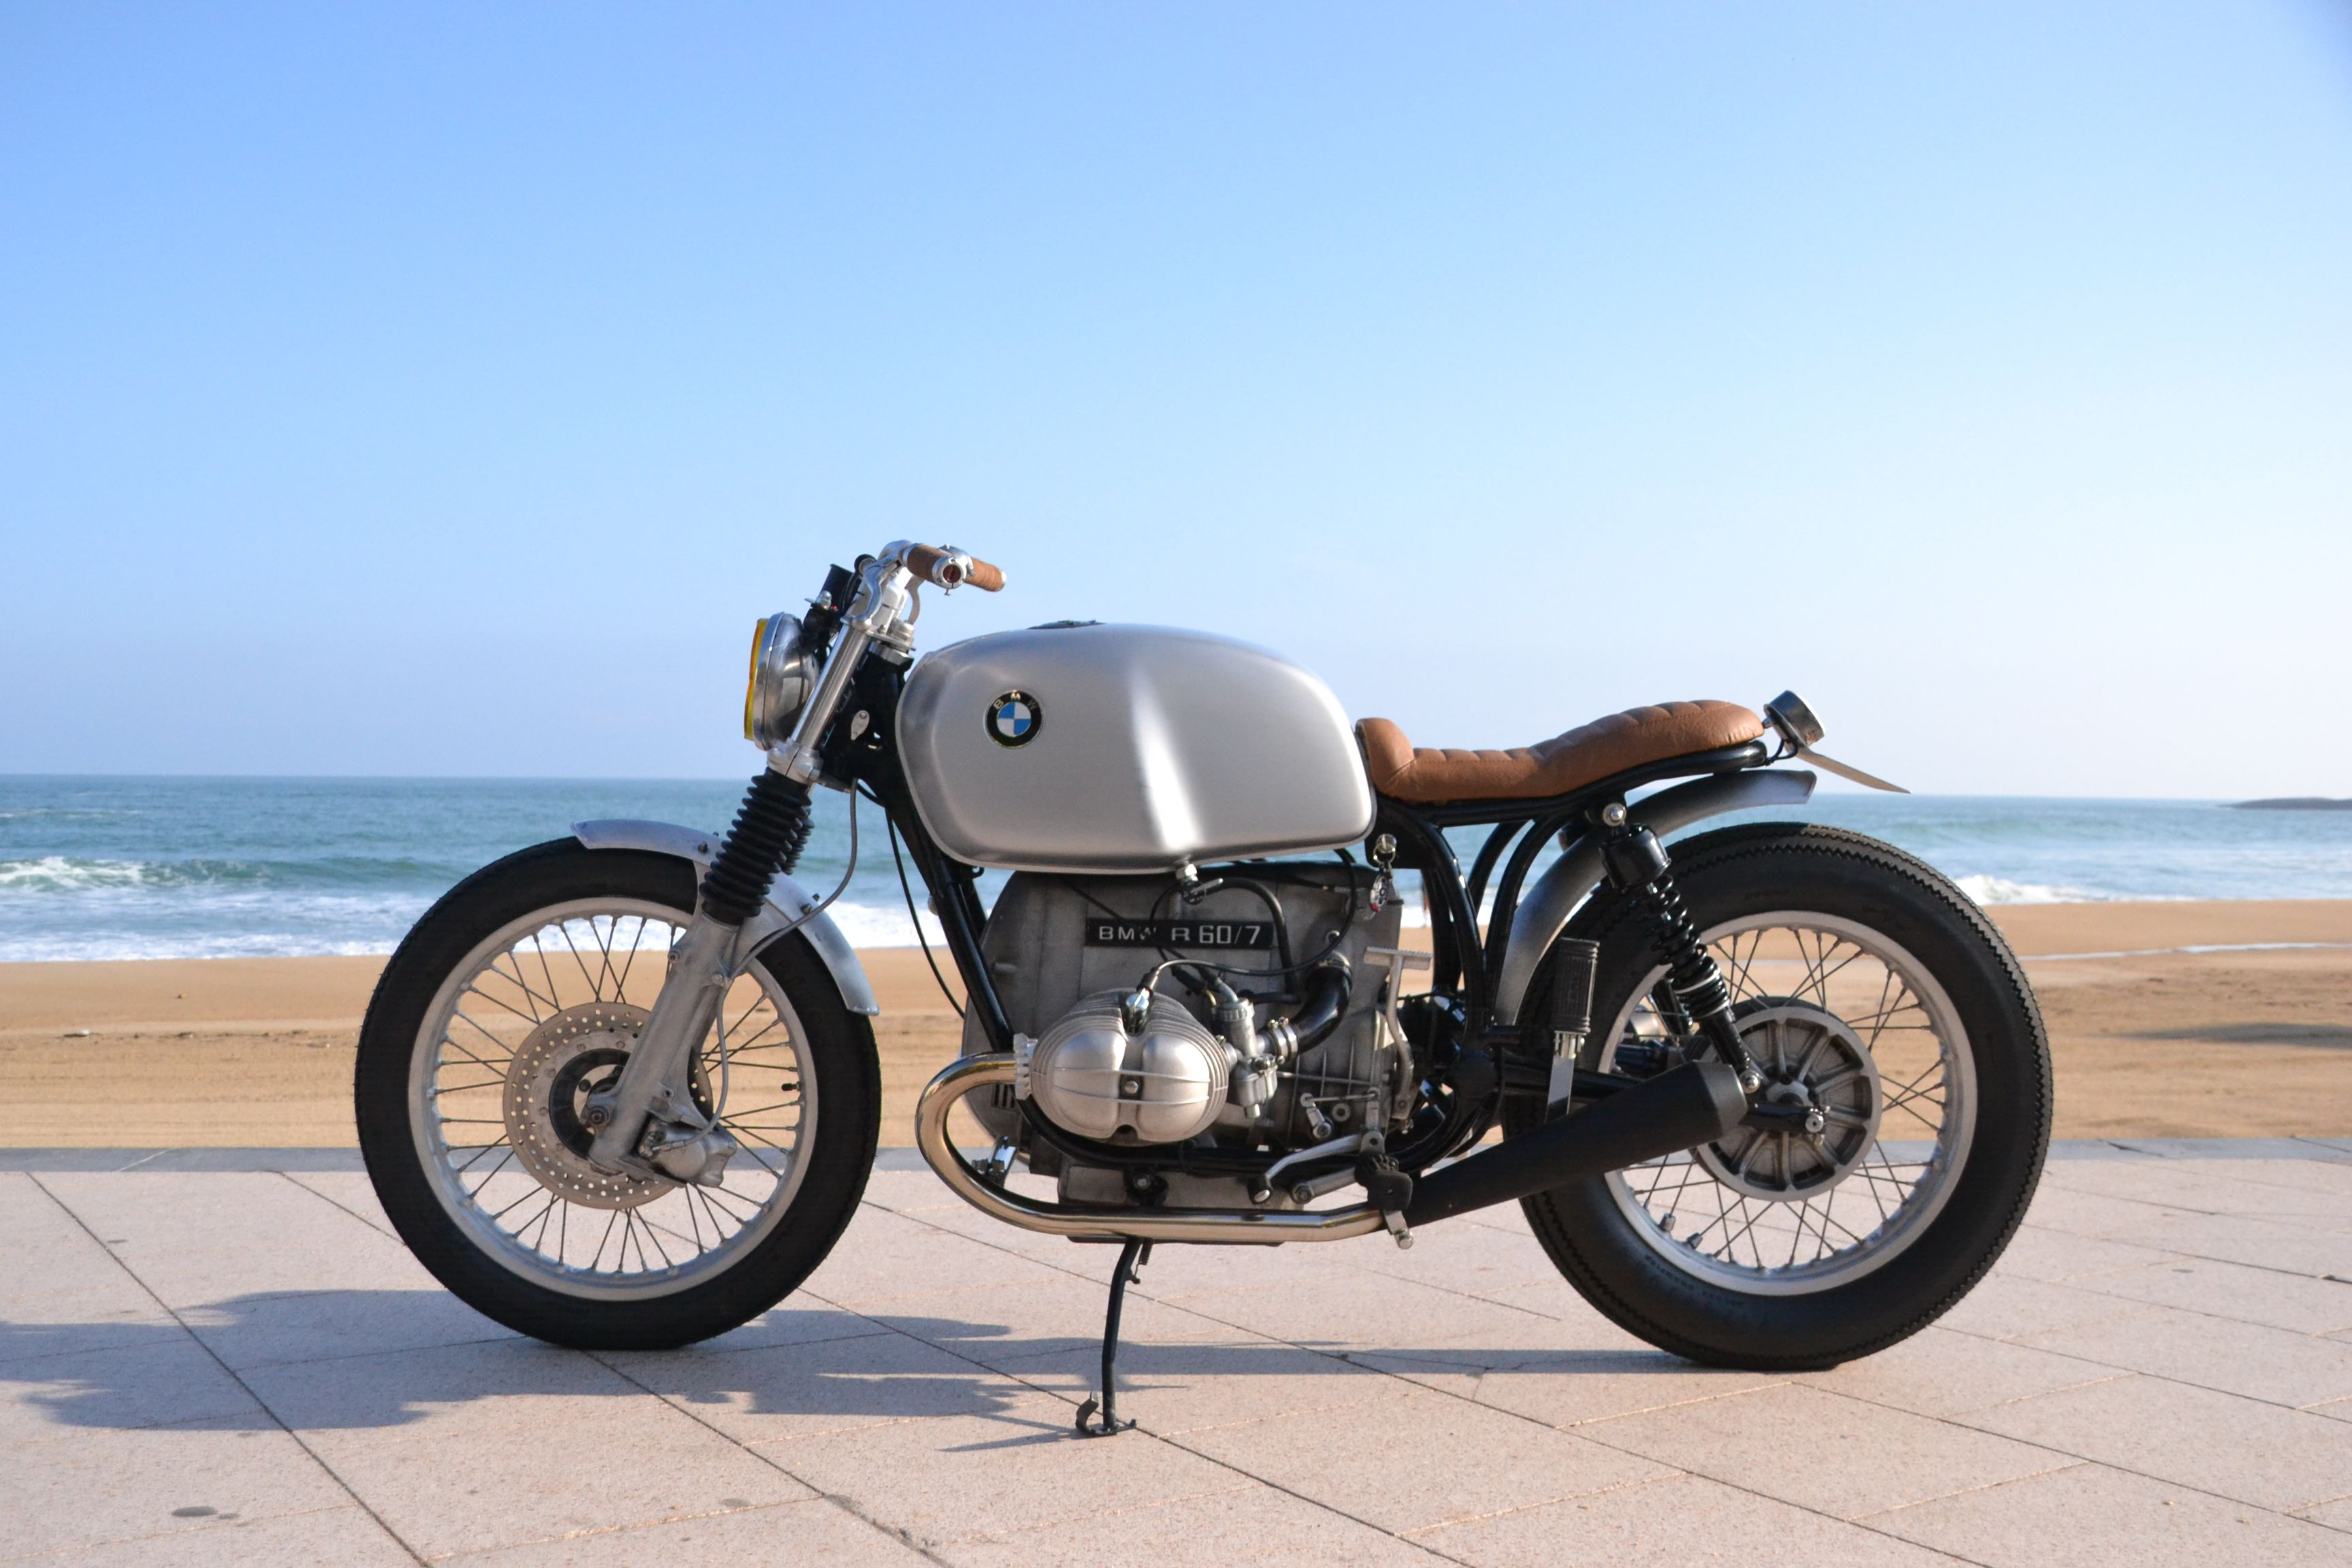 bmw r60 7 au wheels and waves motorbikes design bmw. Black Bedroom Furniture Sets. Home Design Ideas